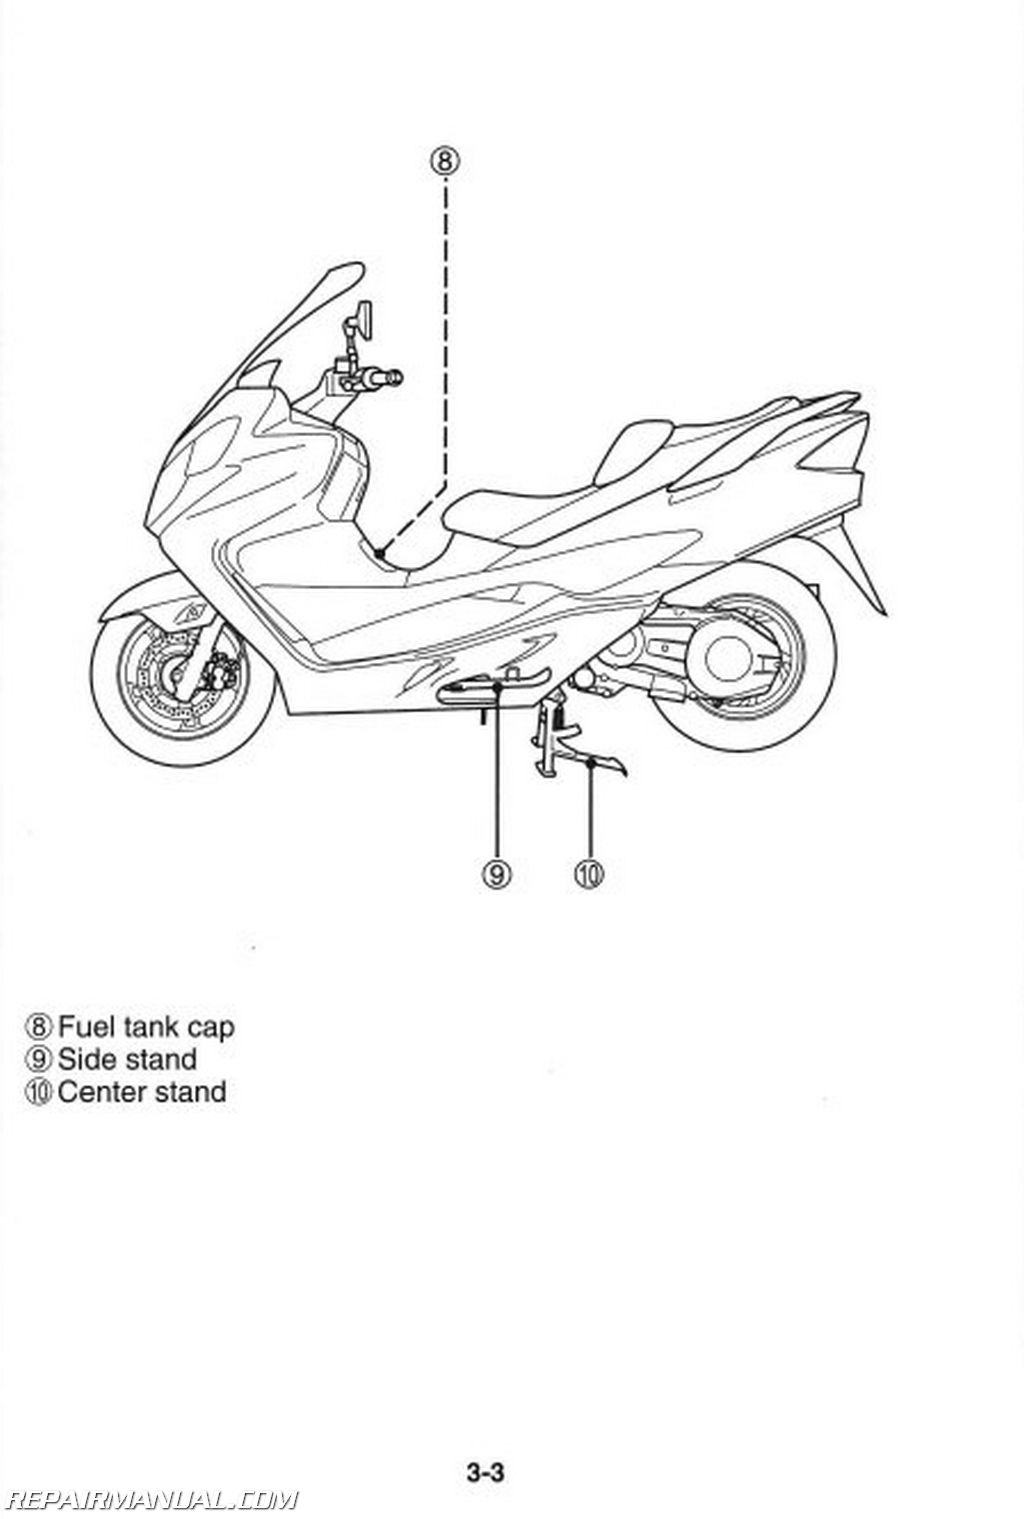 2008 suzuki an400k8 burgman scooter owners manual rh repairmanual com 2014  Suzuki Burgman 400 Review 2012 Suzuki Burgman 400